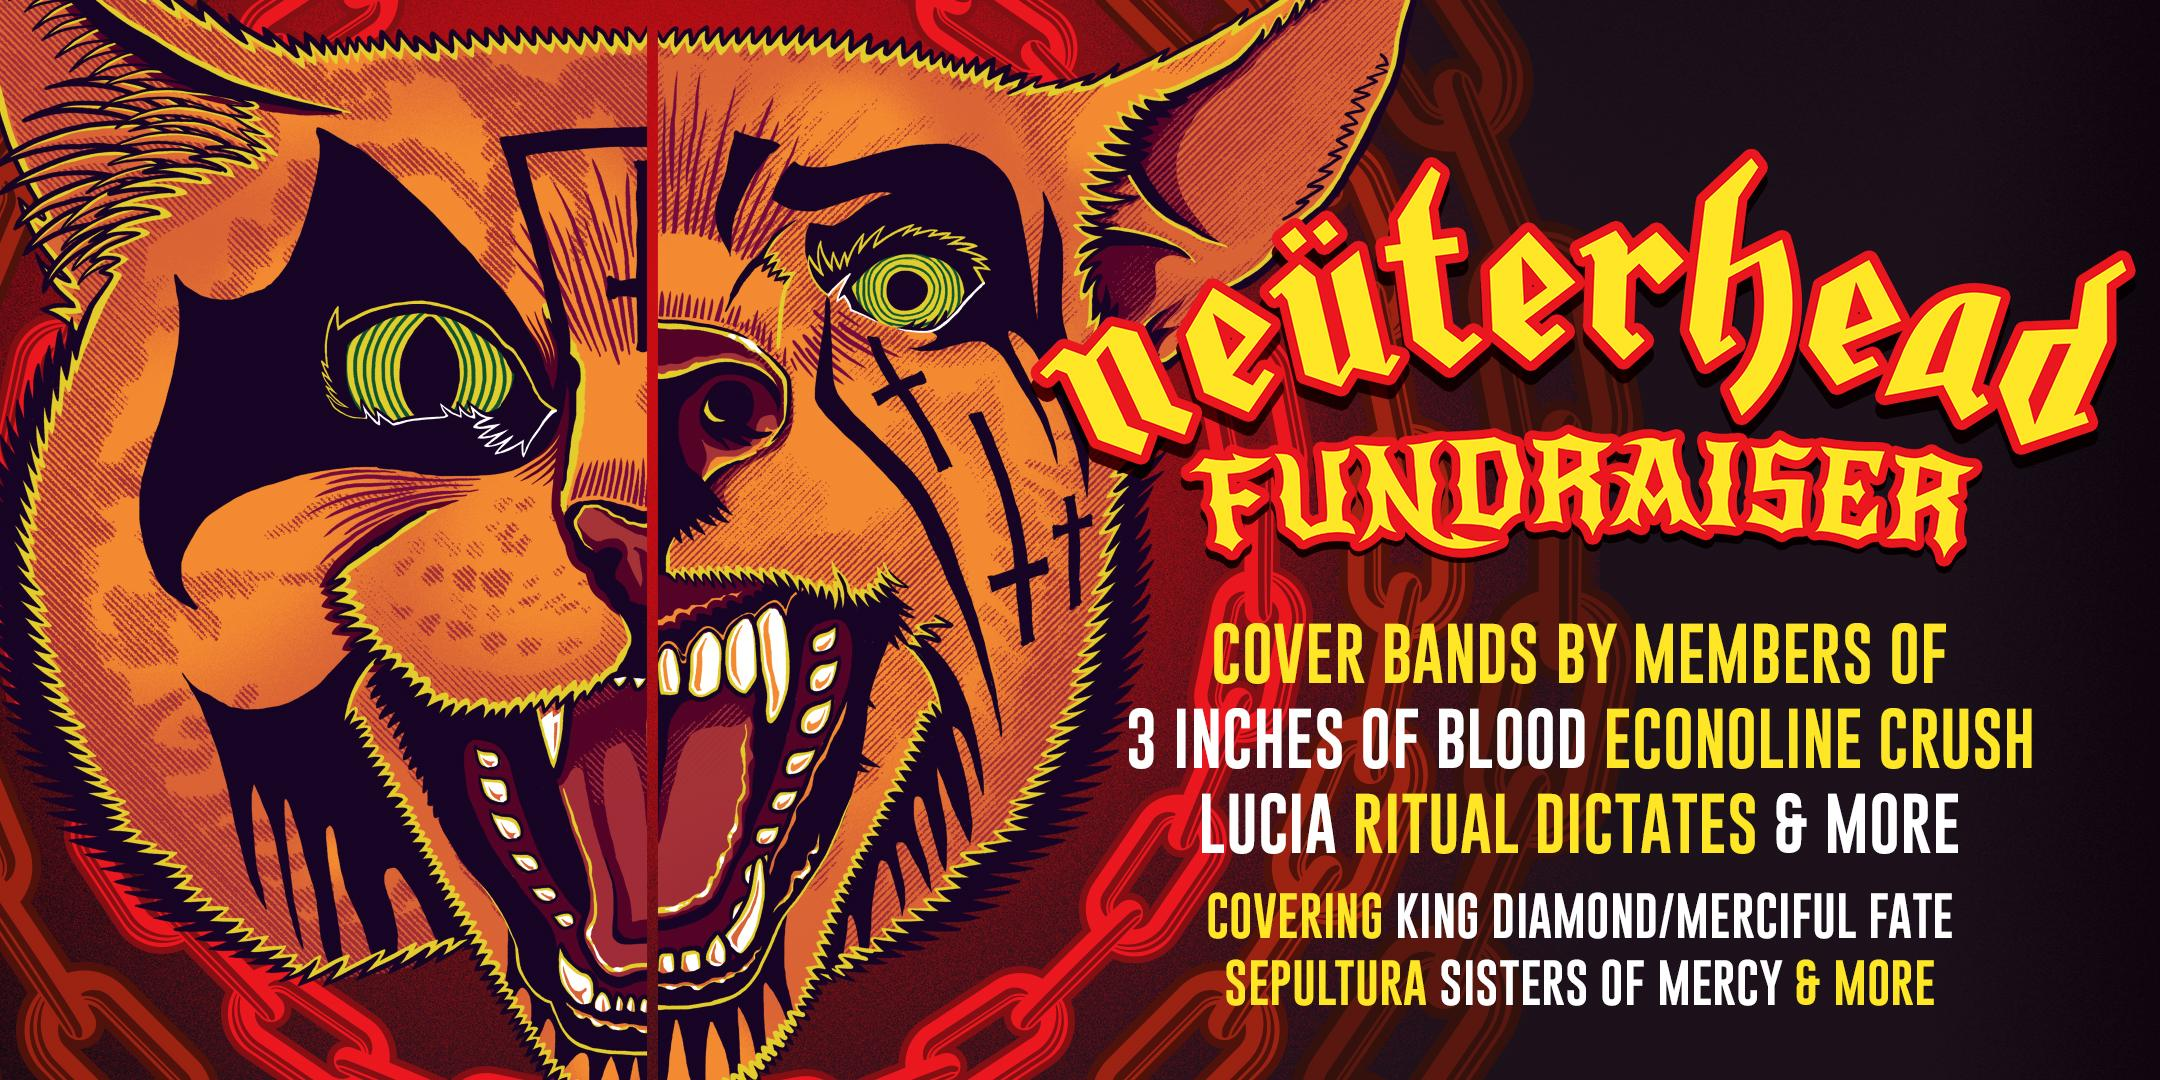 Neüterhead Fundraiser feat. members of 3 Inches of Blood, & more